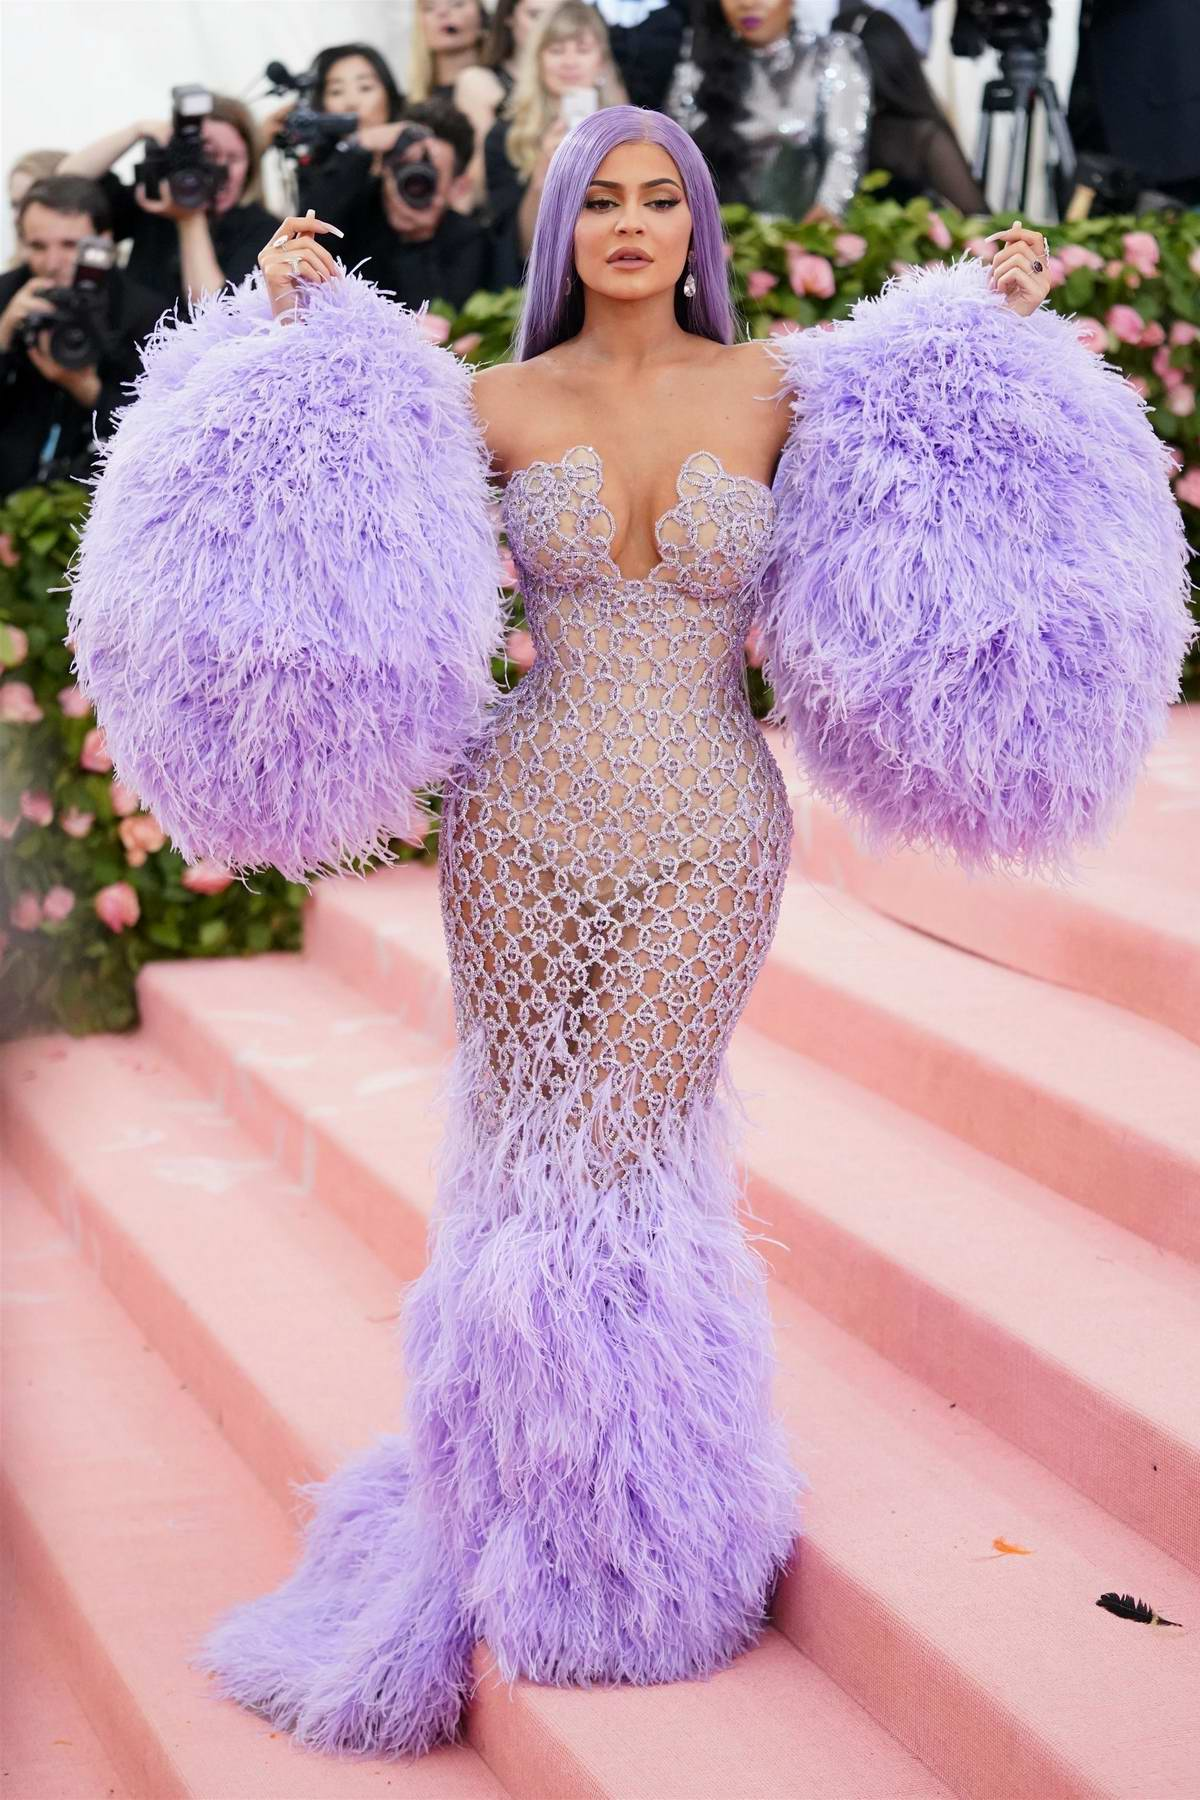 Kylie Jenner attends The 2019 Met Gala Celebrating Camp: Notes on Fashion in New York City